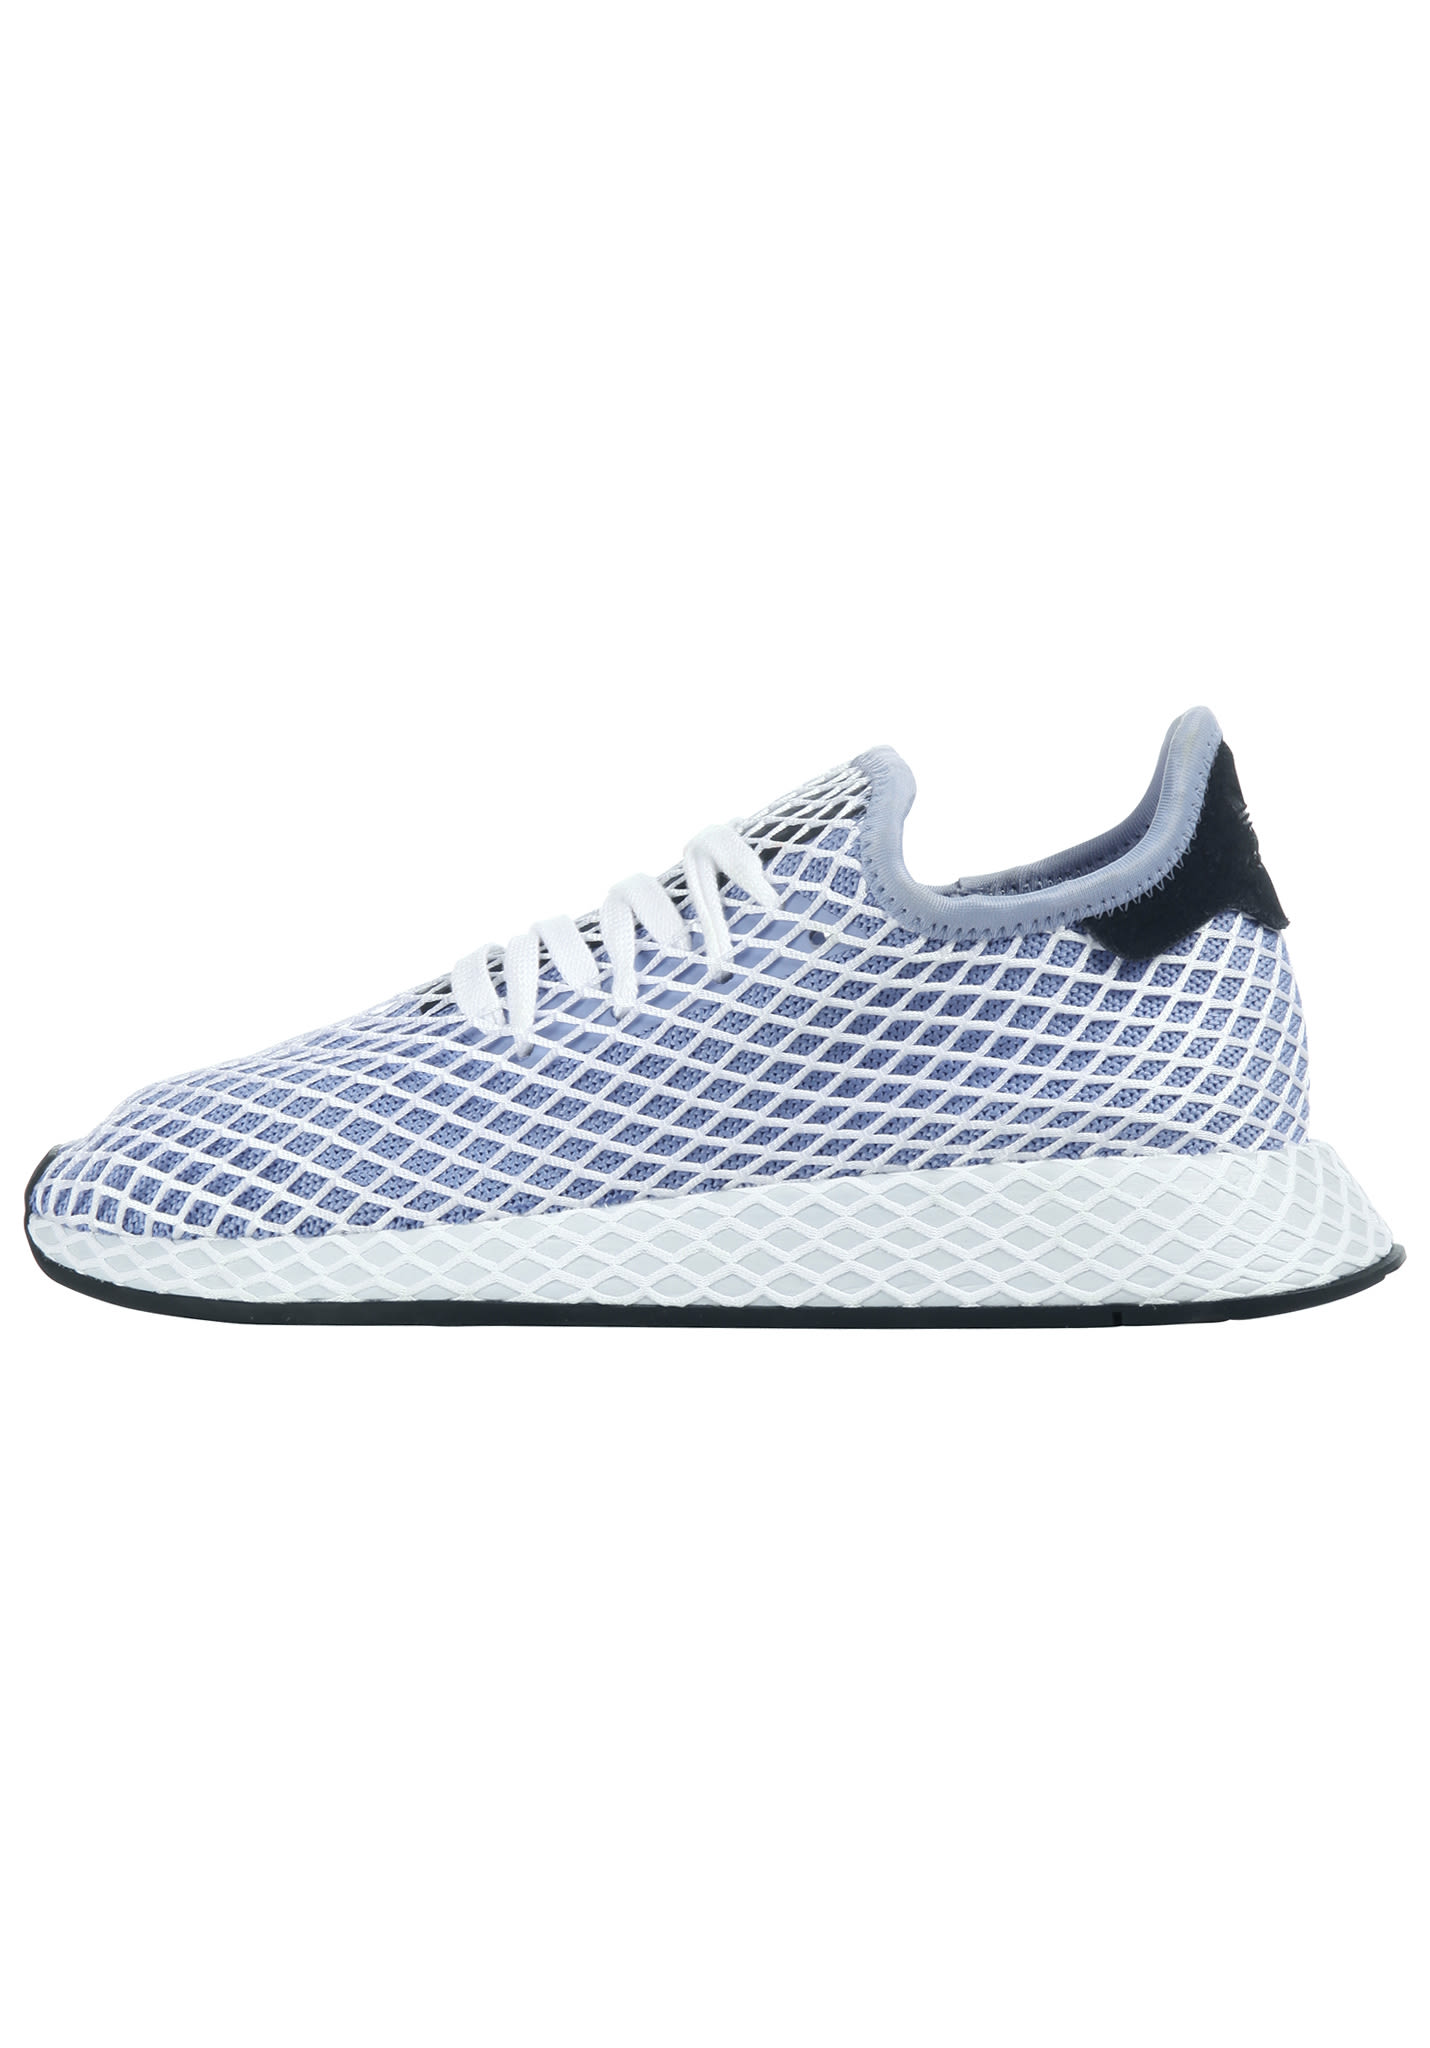 timeless design 05d49 637ef ADIDAS ORIGINALS Deerupt Runner - Sneakers for Women - Blue